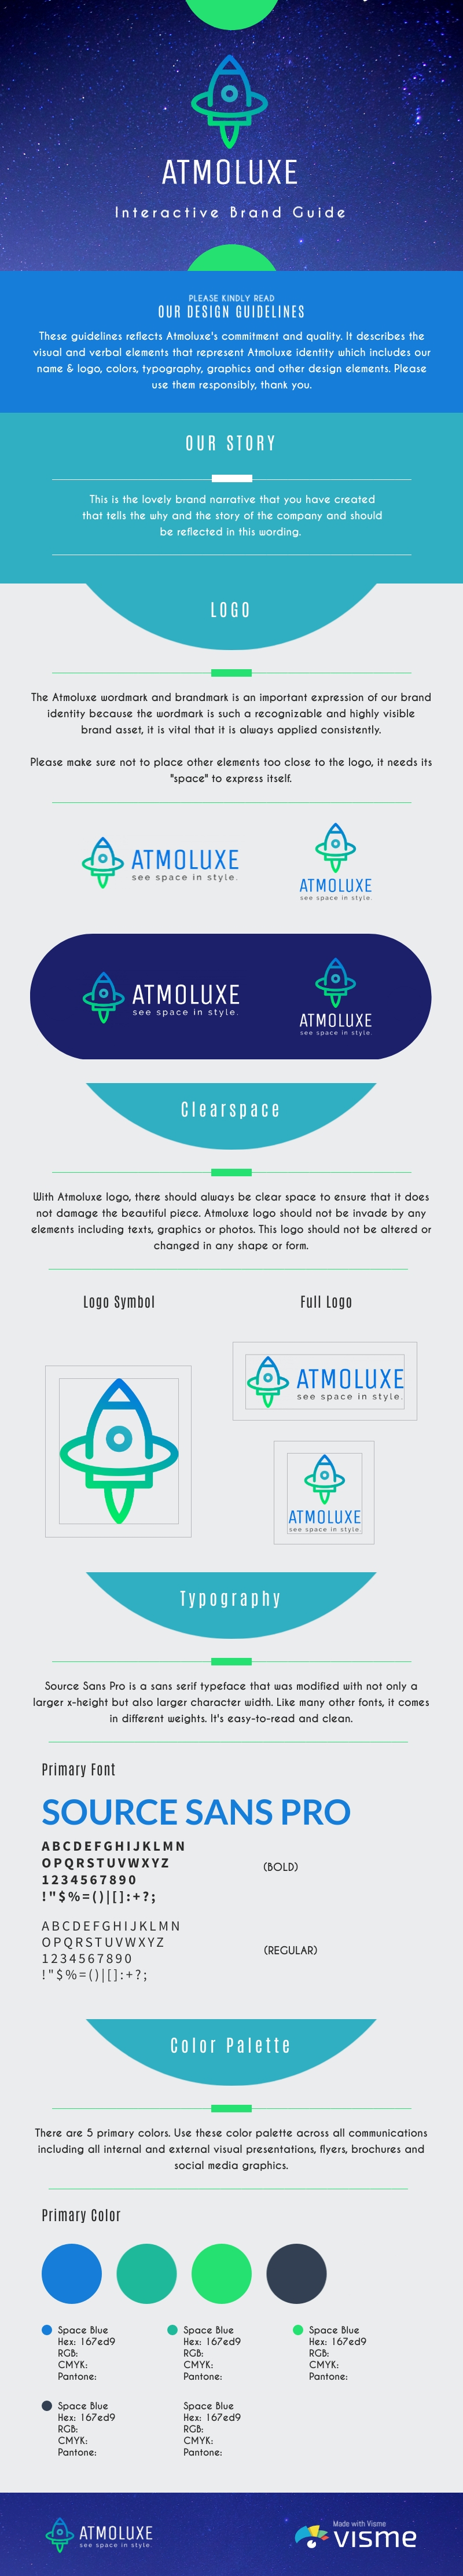 Space Brand Guidelines - Infographic Template